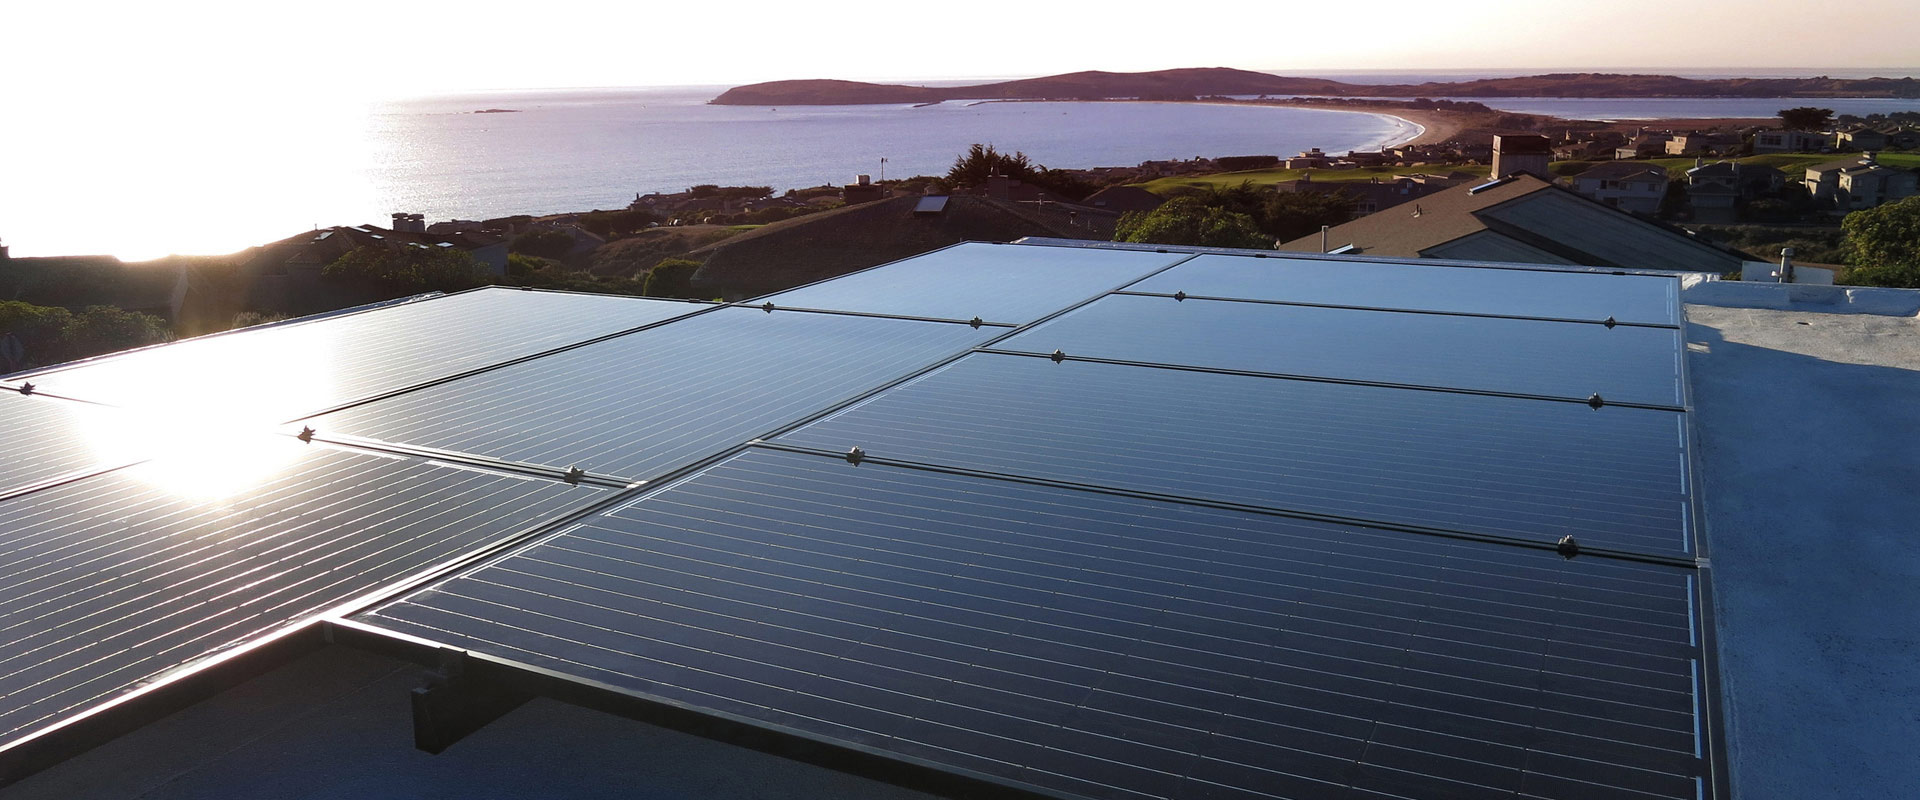 solar-panels-bodega-bay